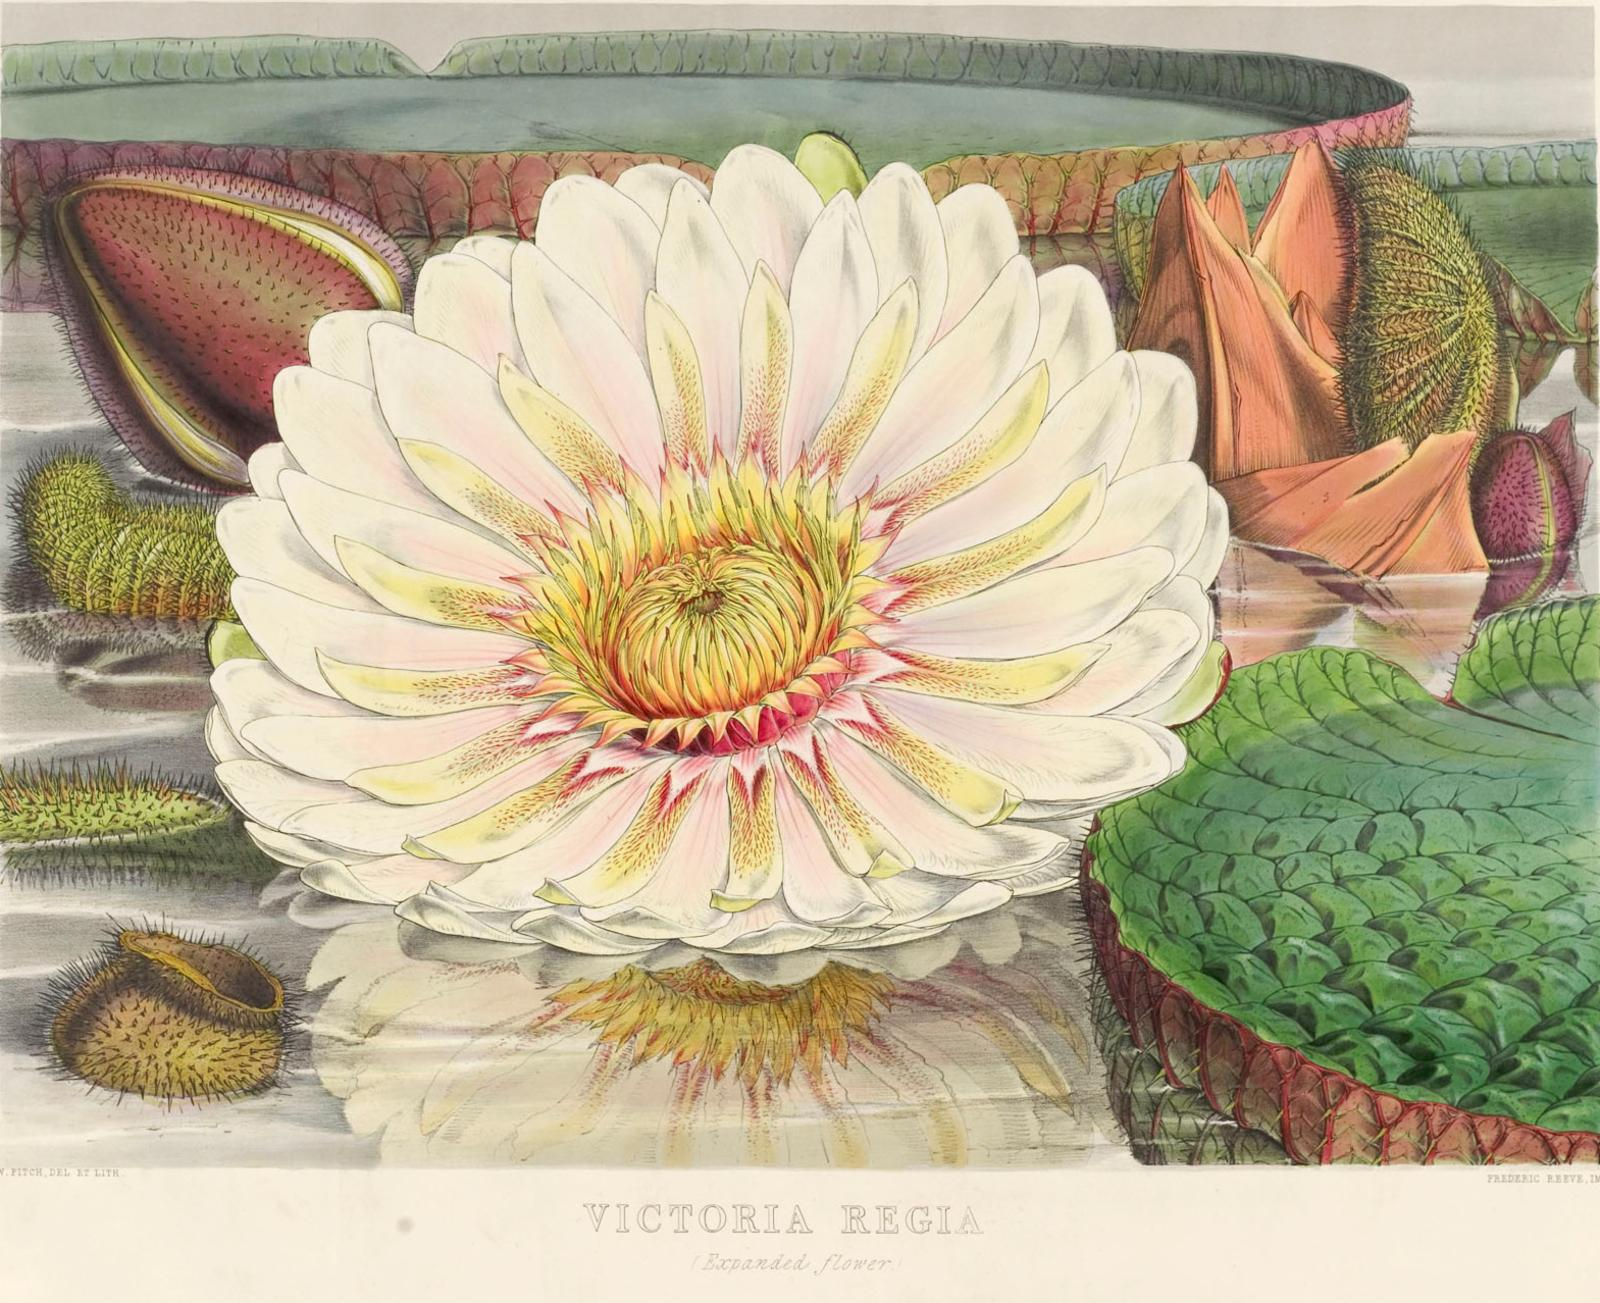 Victoria Amazonica Poepp Klotzsch Plants Of The World Online